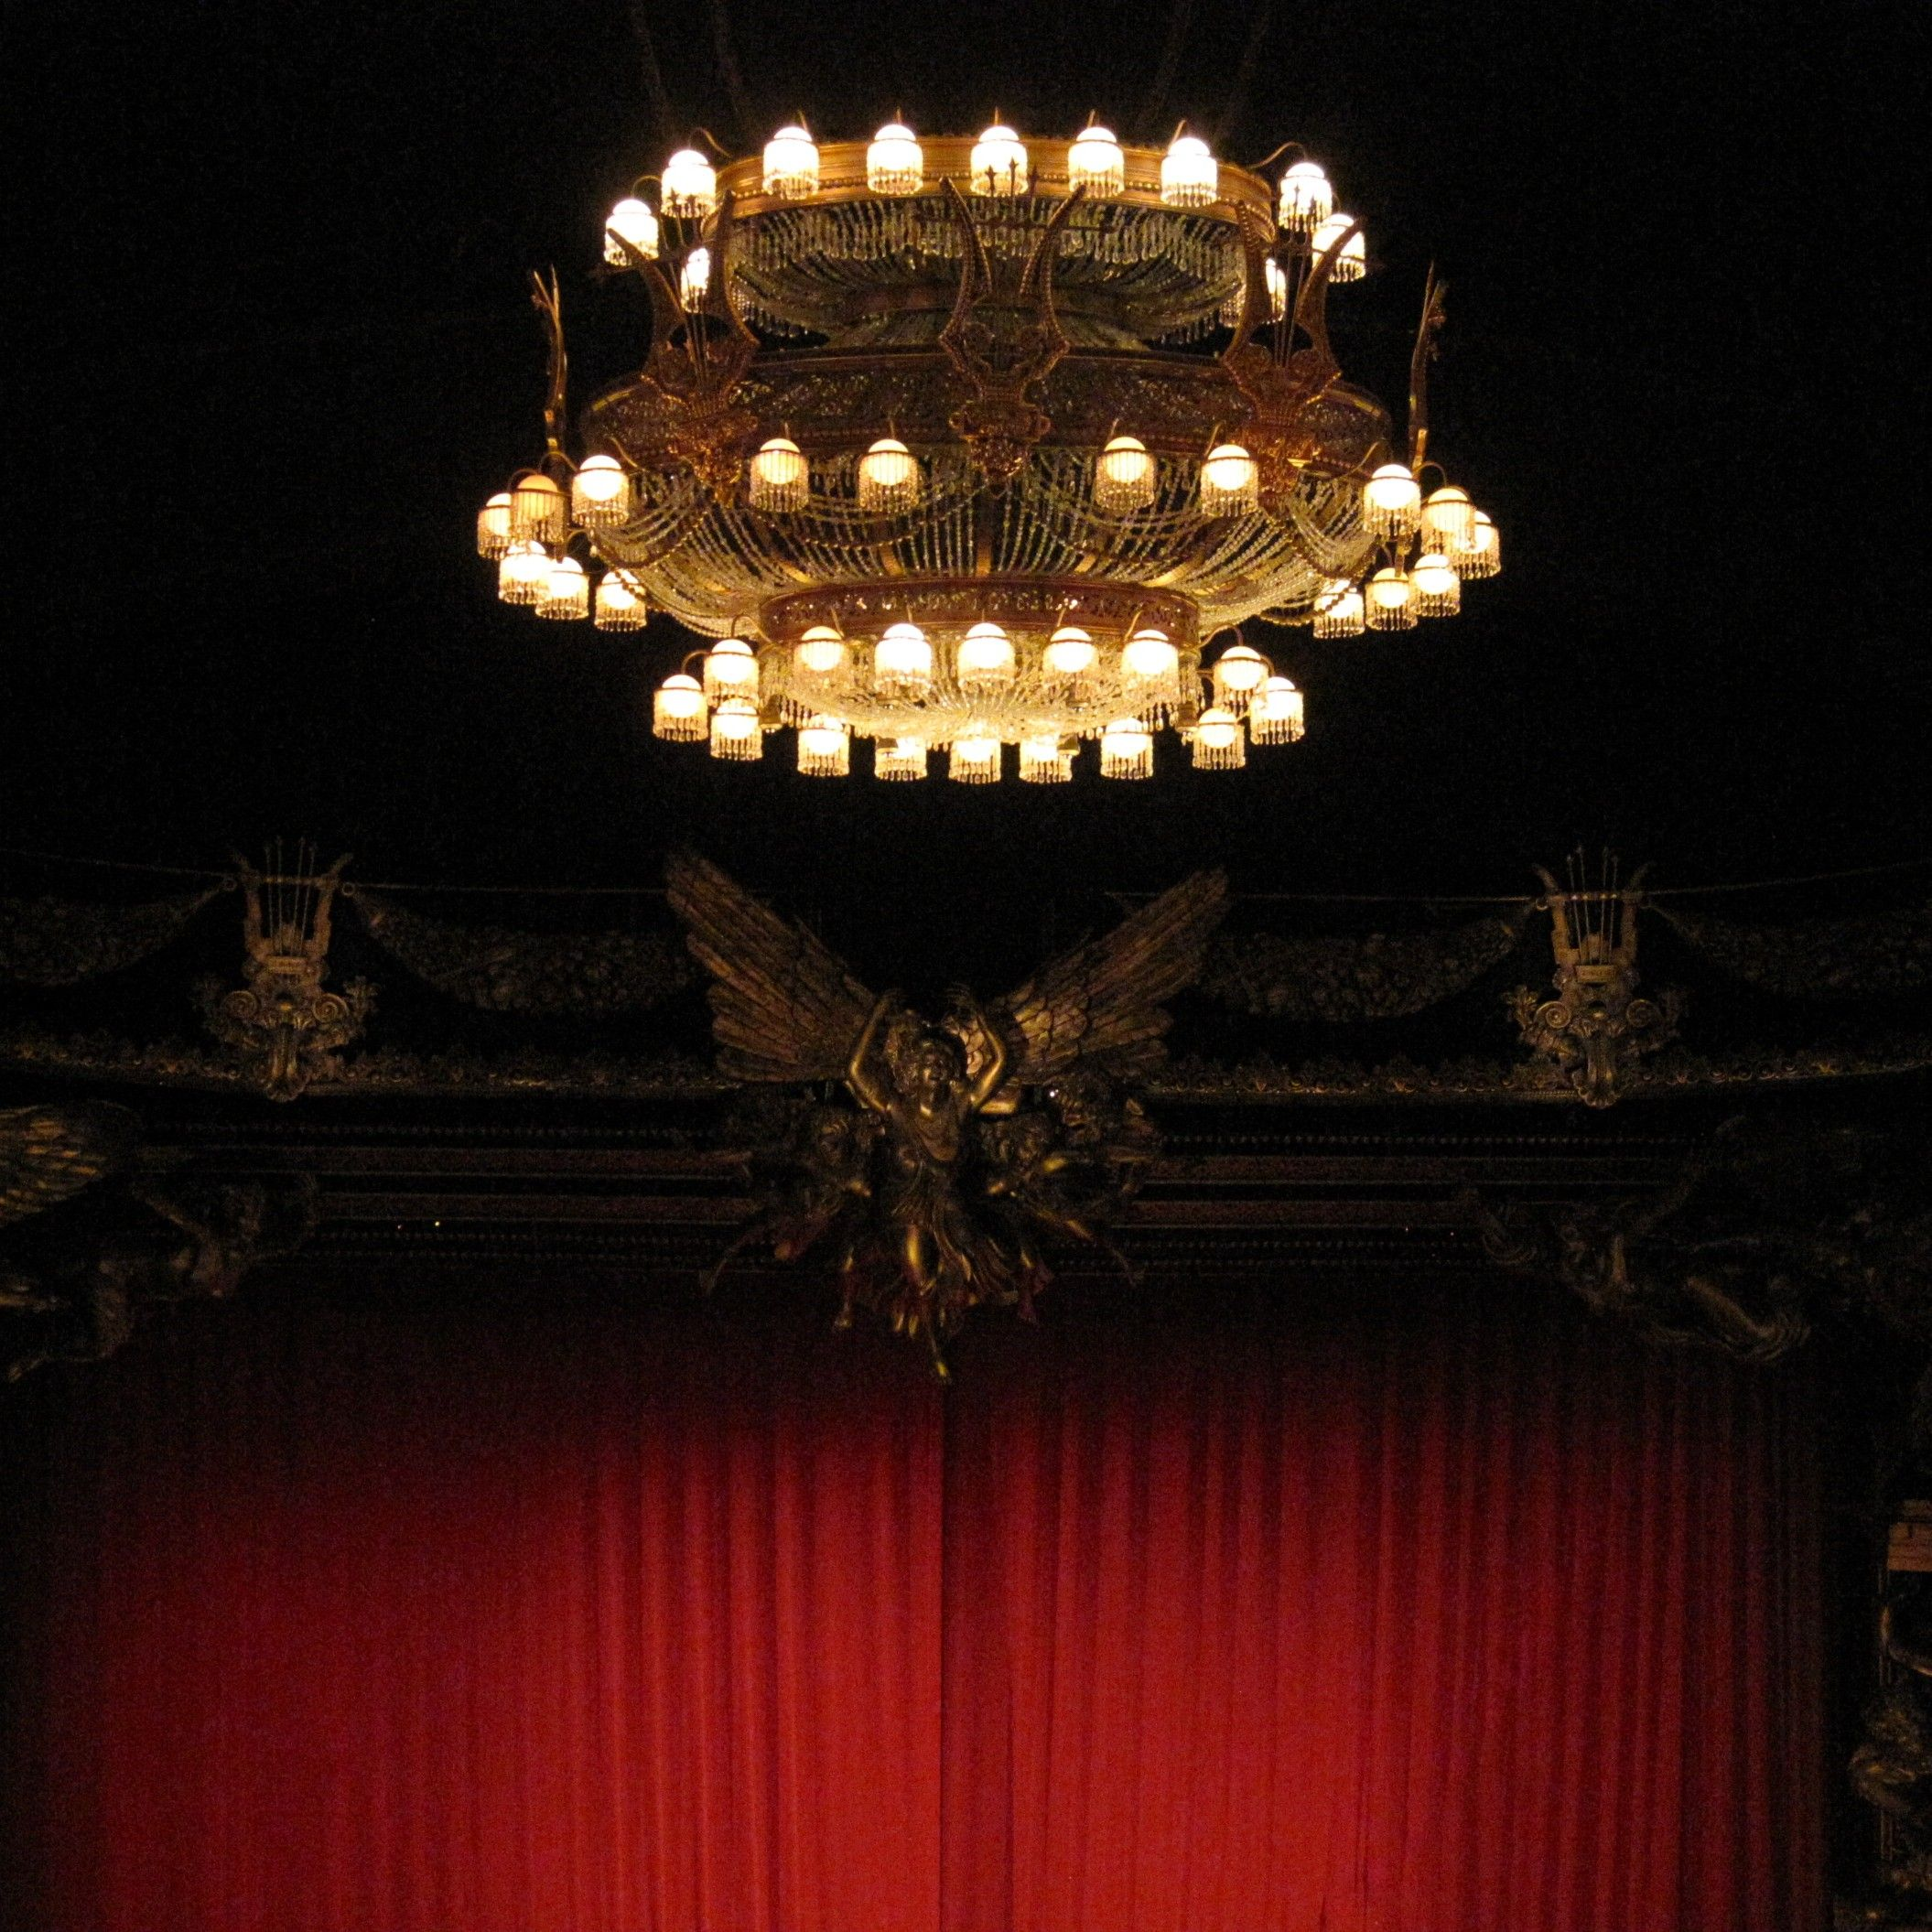 Phantom of the Opera Broadway stage - Imagine that chandelier falling over your head! & Phantom of the Opera Broadway stage - Imagine that chandelier ... azcodes.com